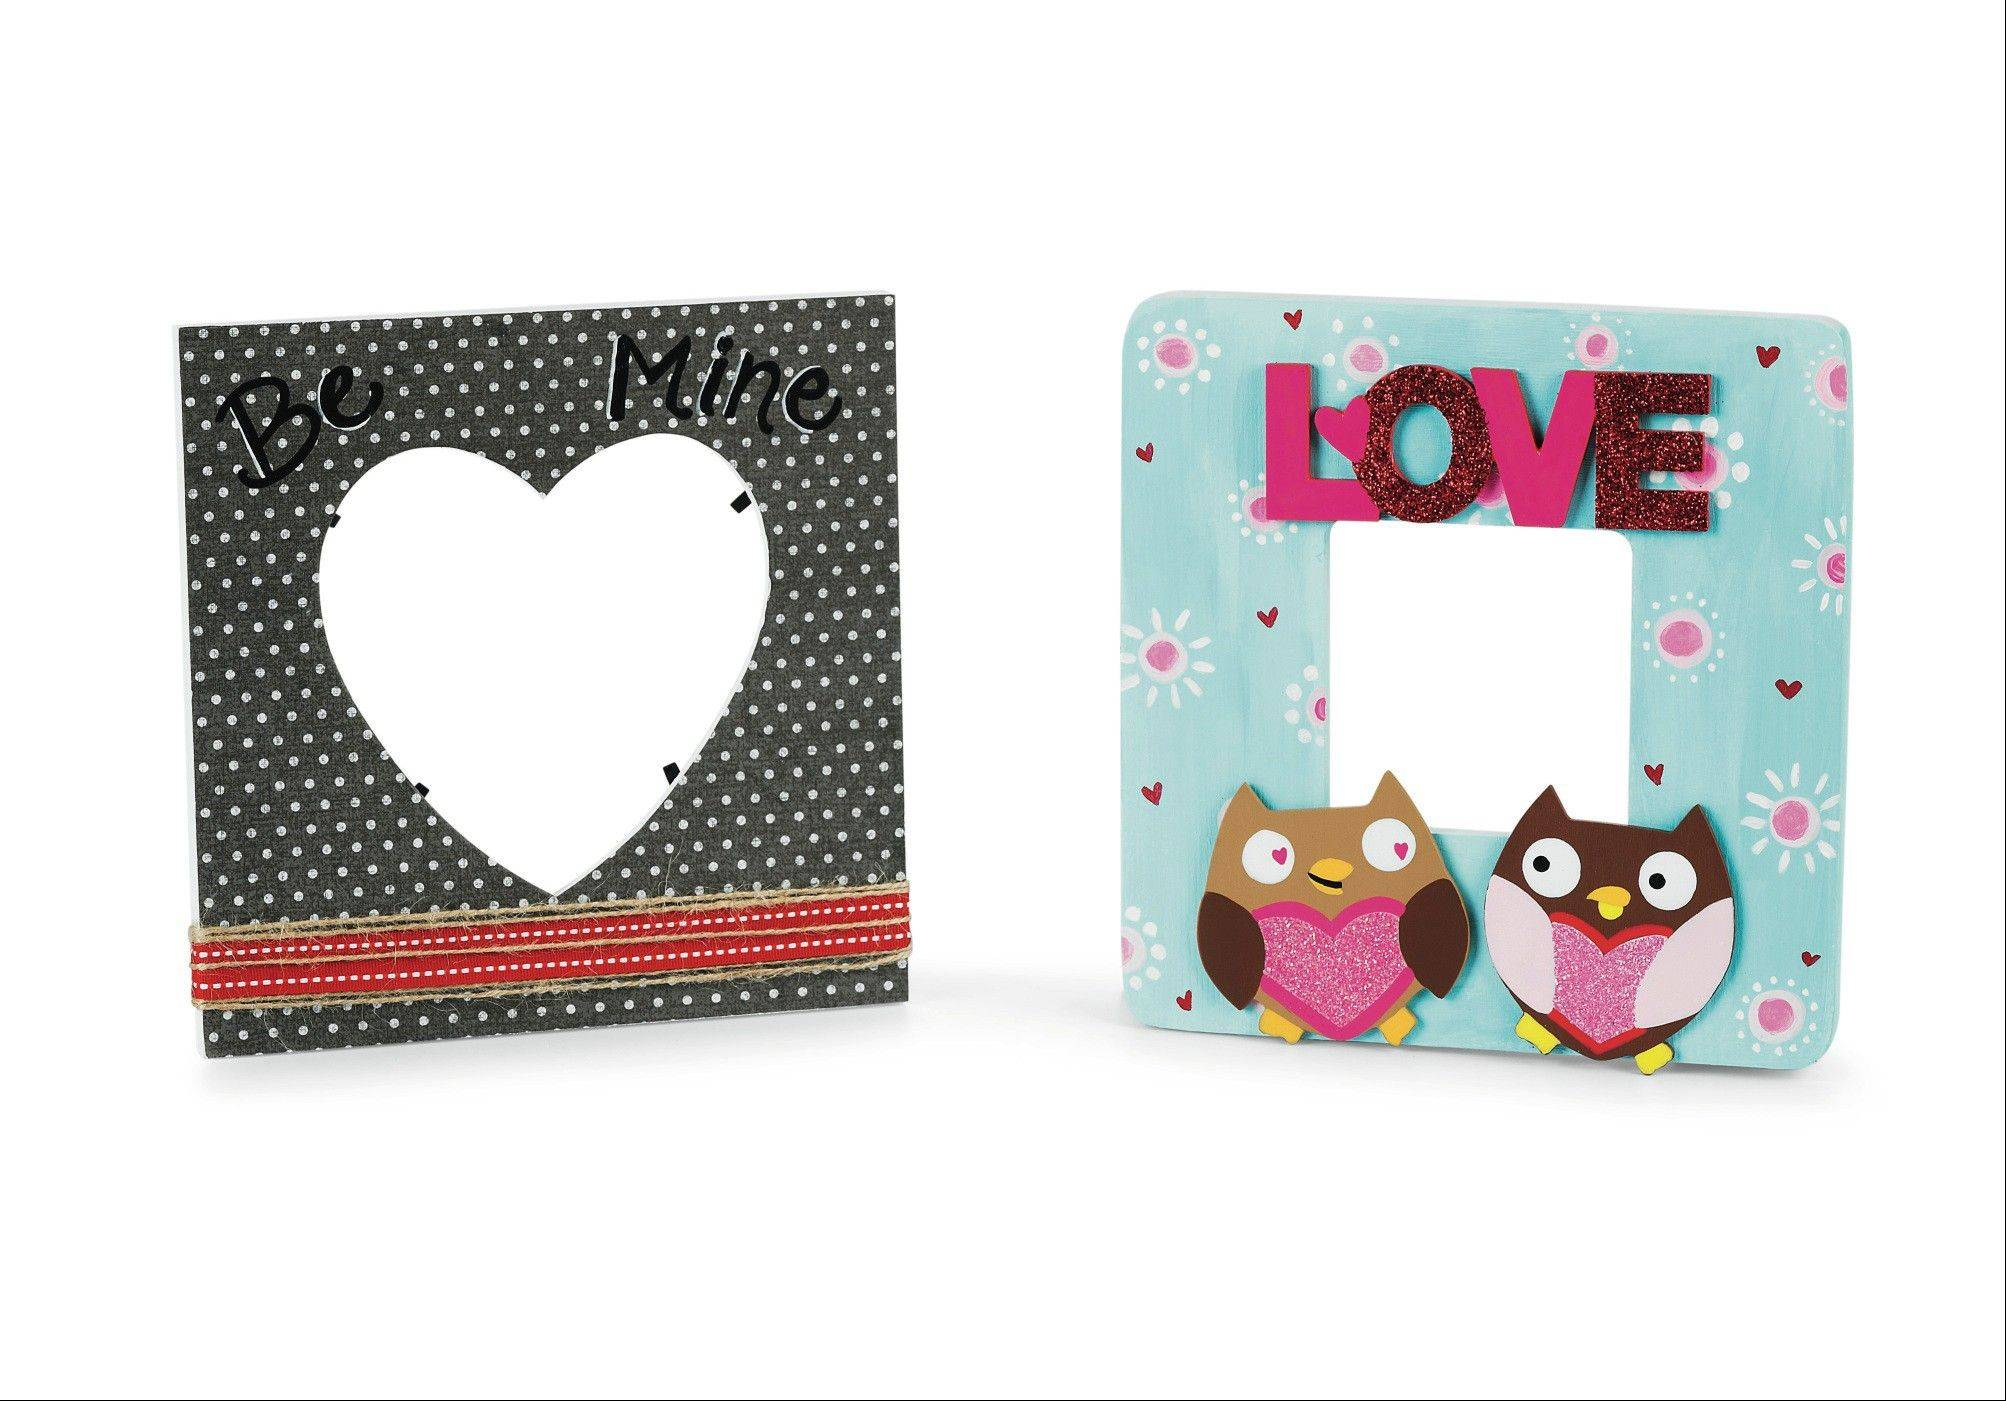 Valentine frames, available at Michaels, can make for a beautiful personalized gift.